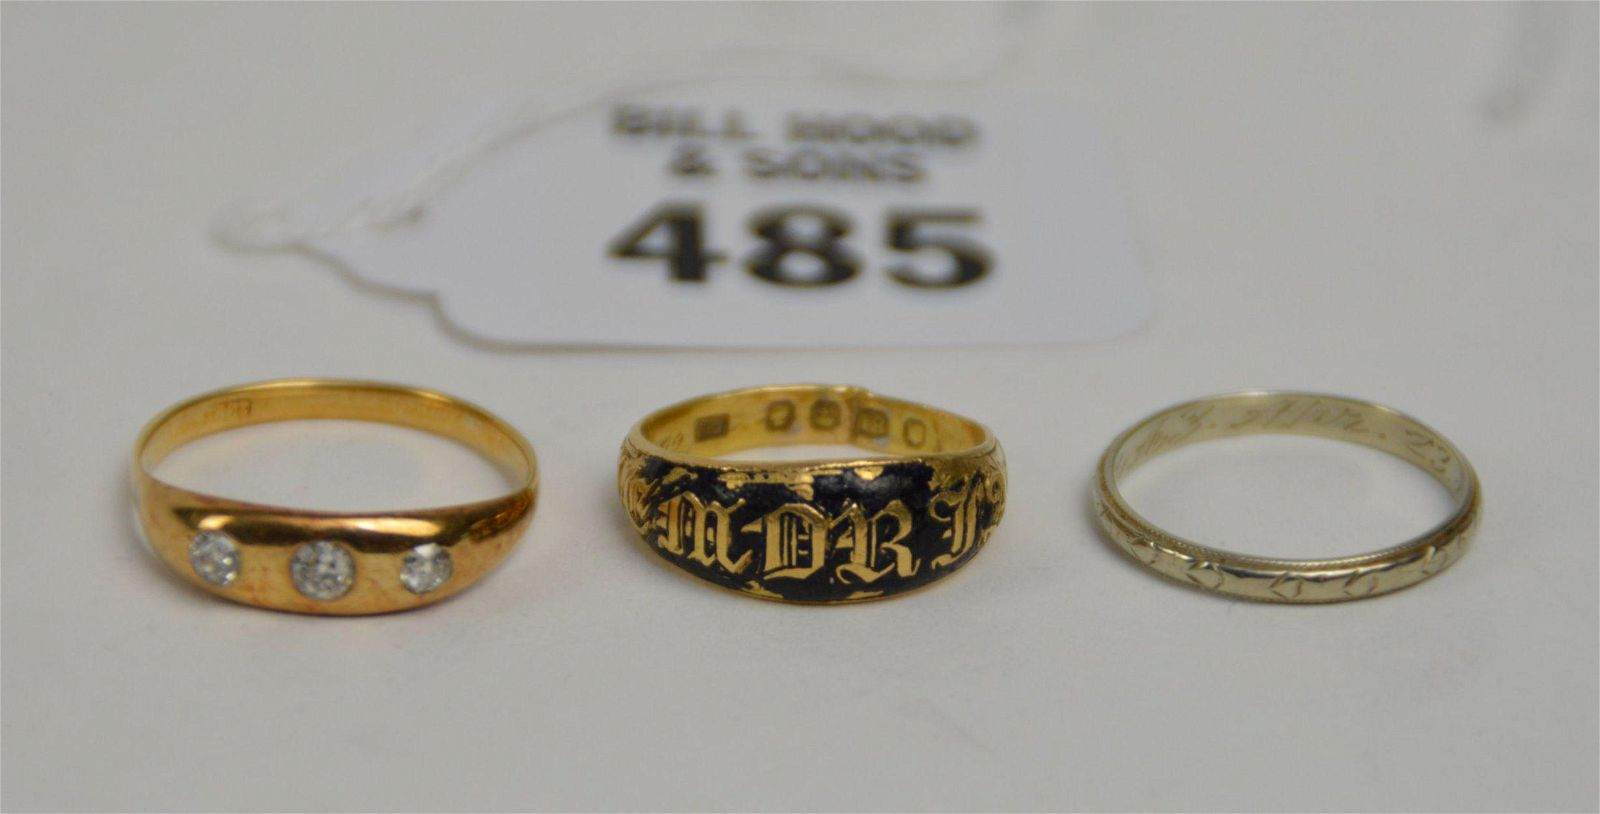 3 - 18K Yellow and White Gold Rings. 18k Yellow gold